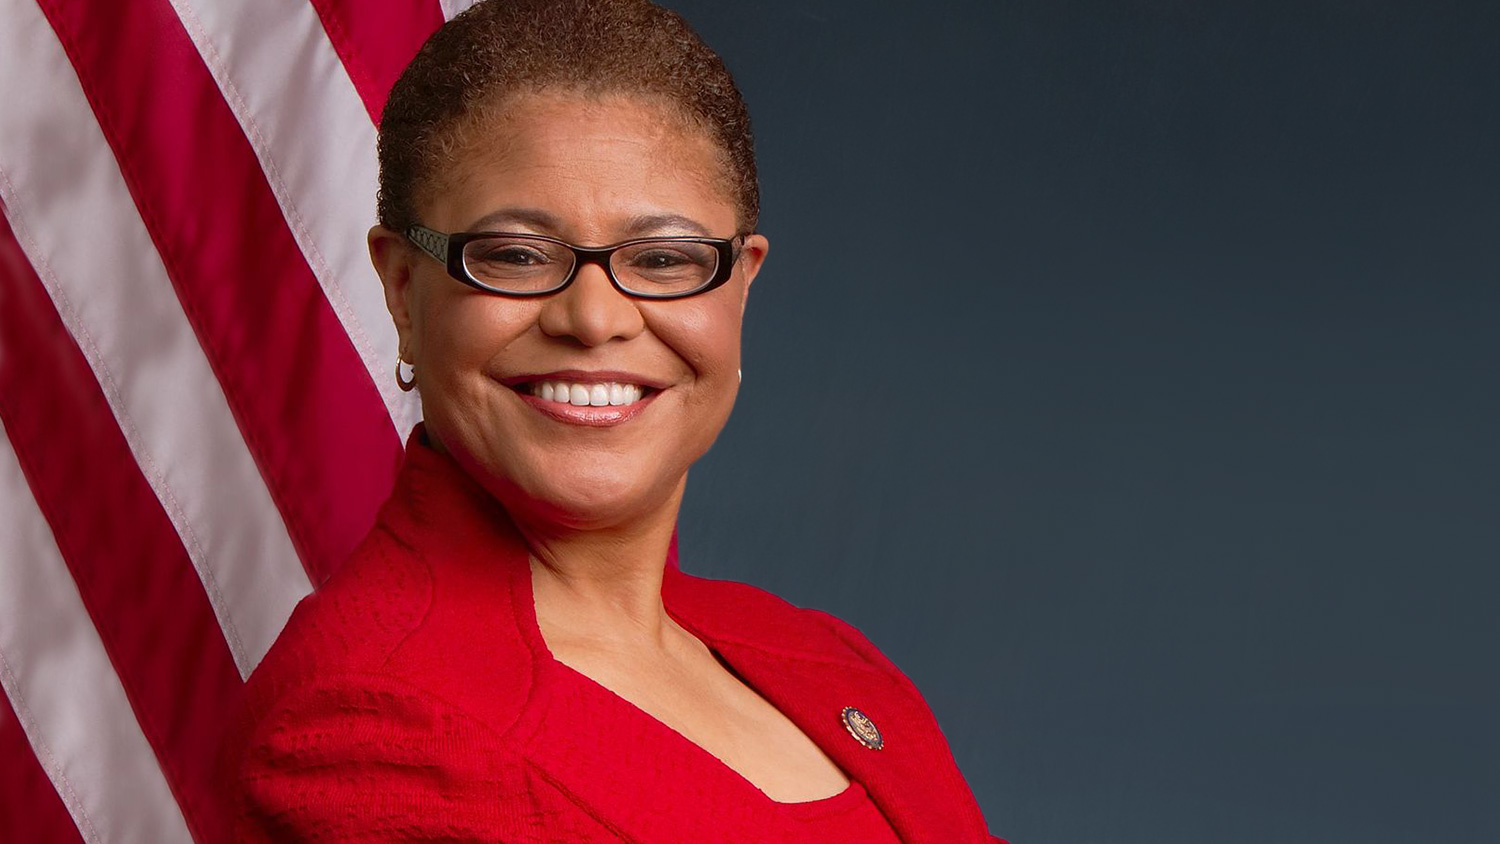 Rep. Karen Bass - D-CA 37th District